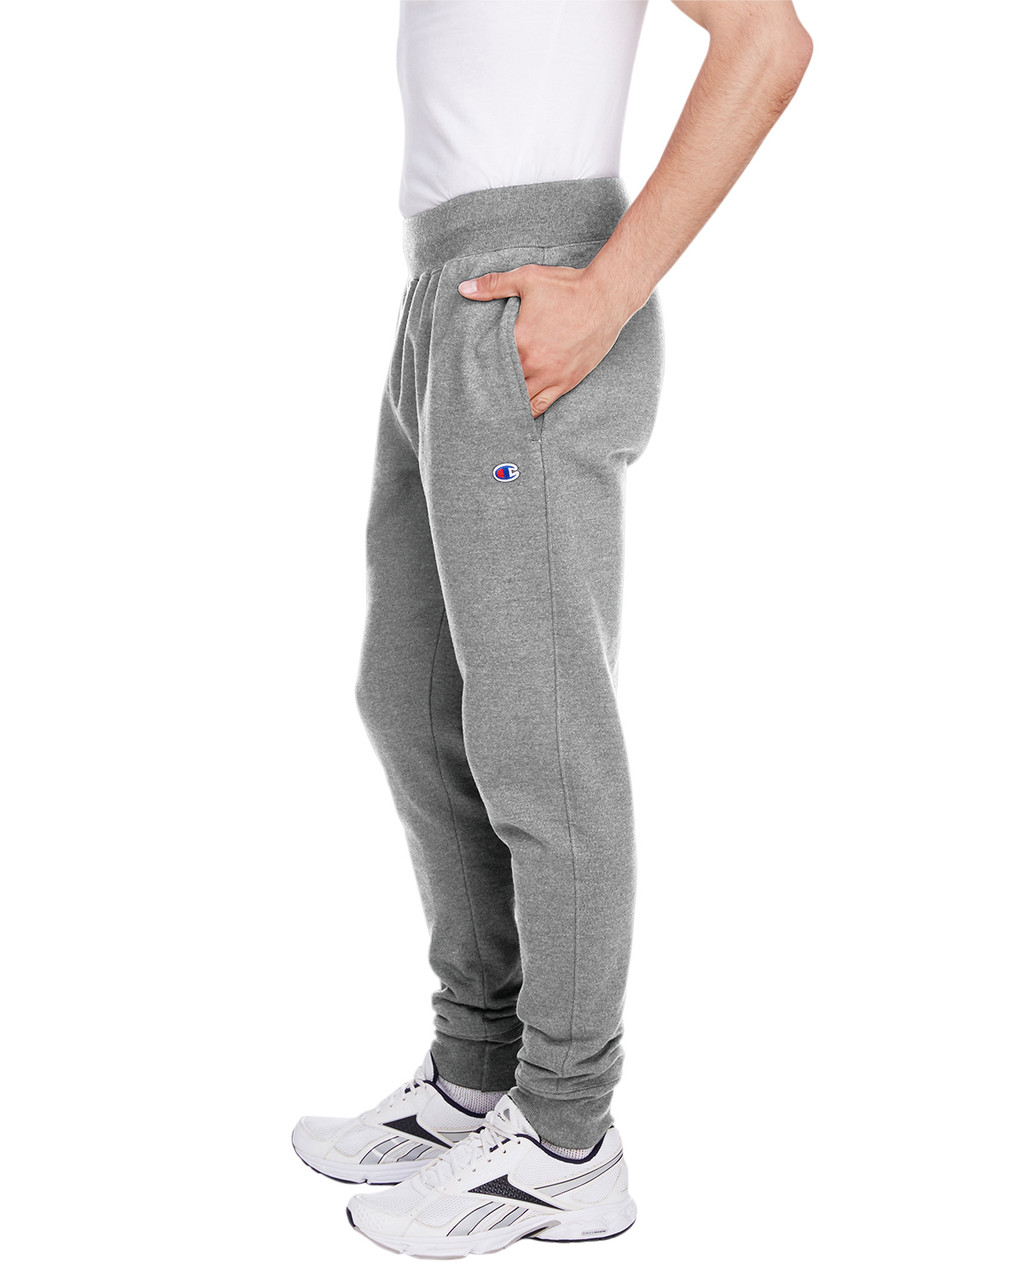 Oxford Grey - Side, RW25 Champion Men's Reverse Weave Jogger Pant | BlankClothing.ca